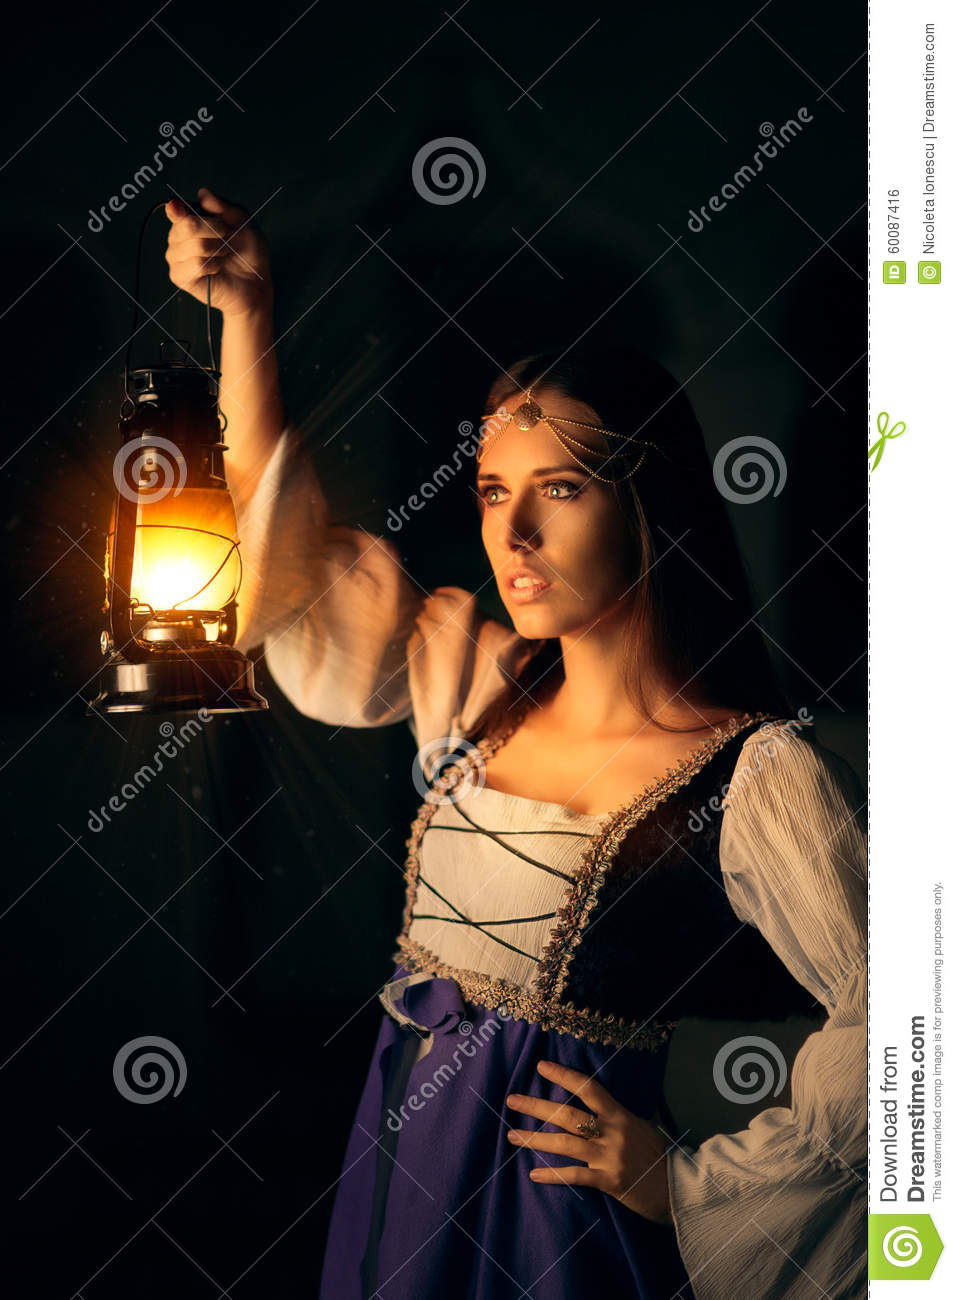 Beautiful Medieval Princess Holding Lantern Stock Photo - Image of ... for Girl Holding Lamp  45hul